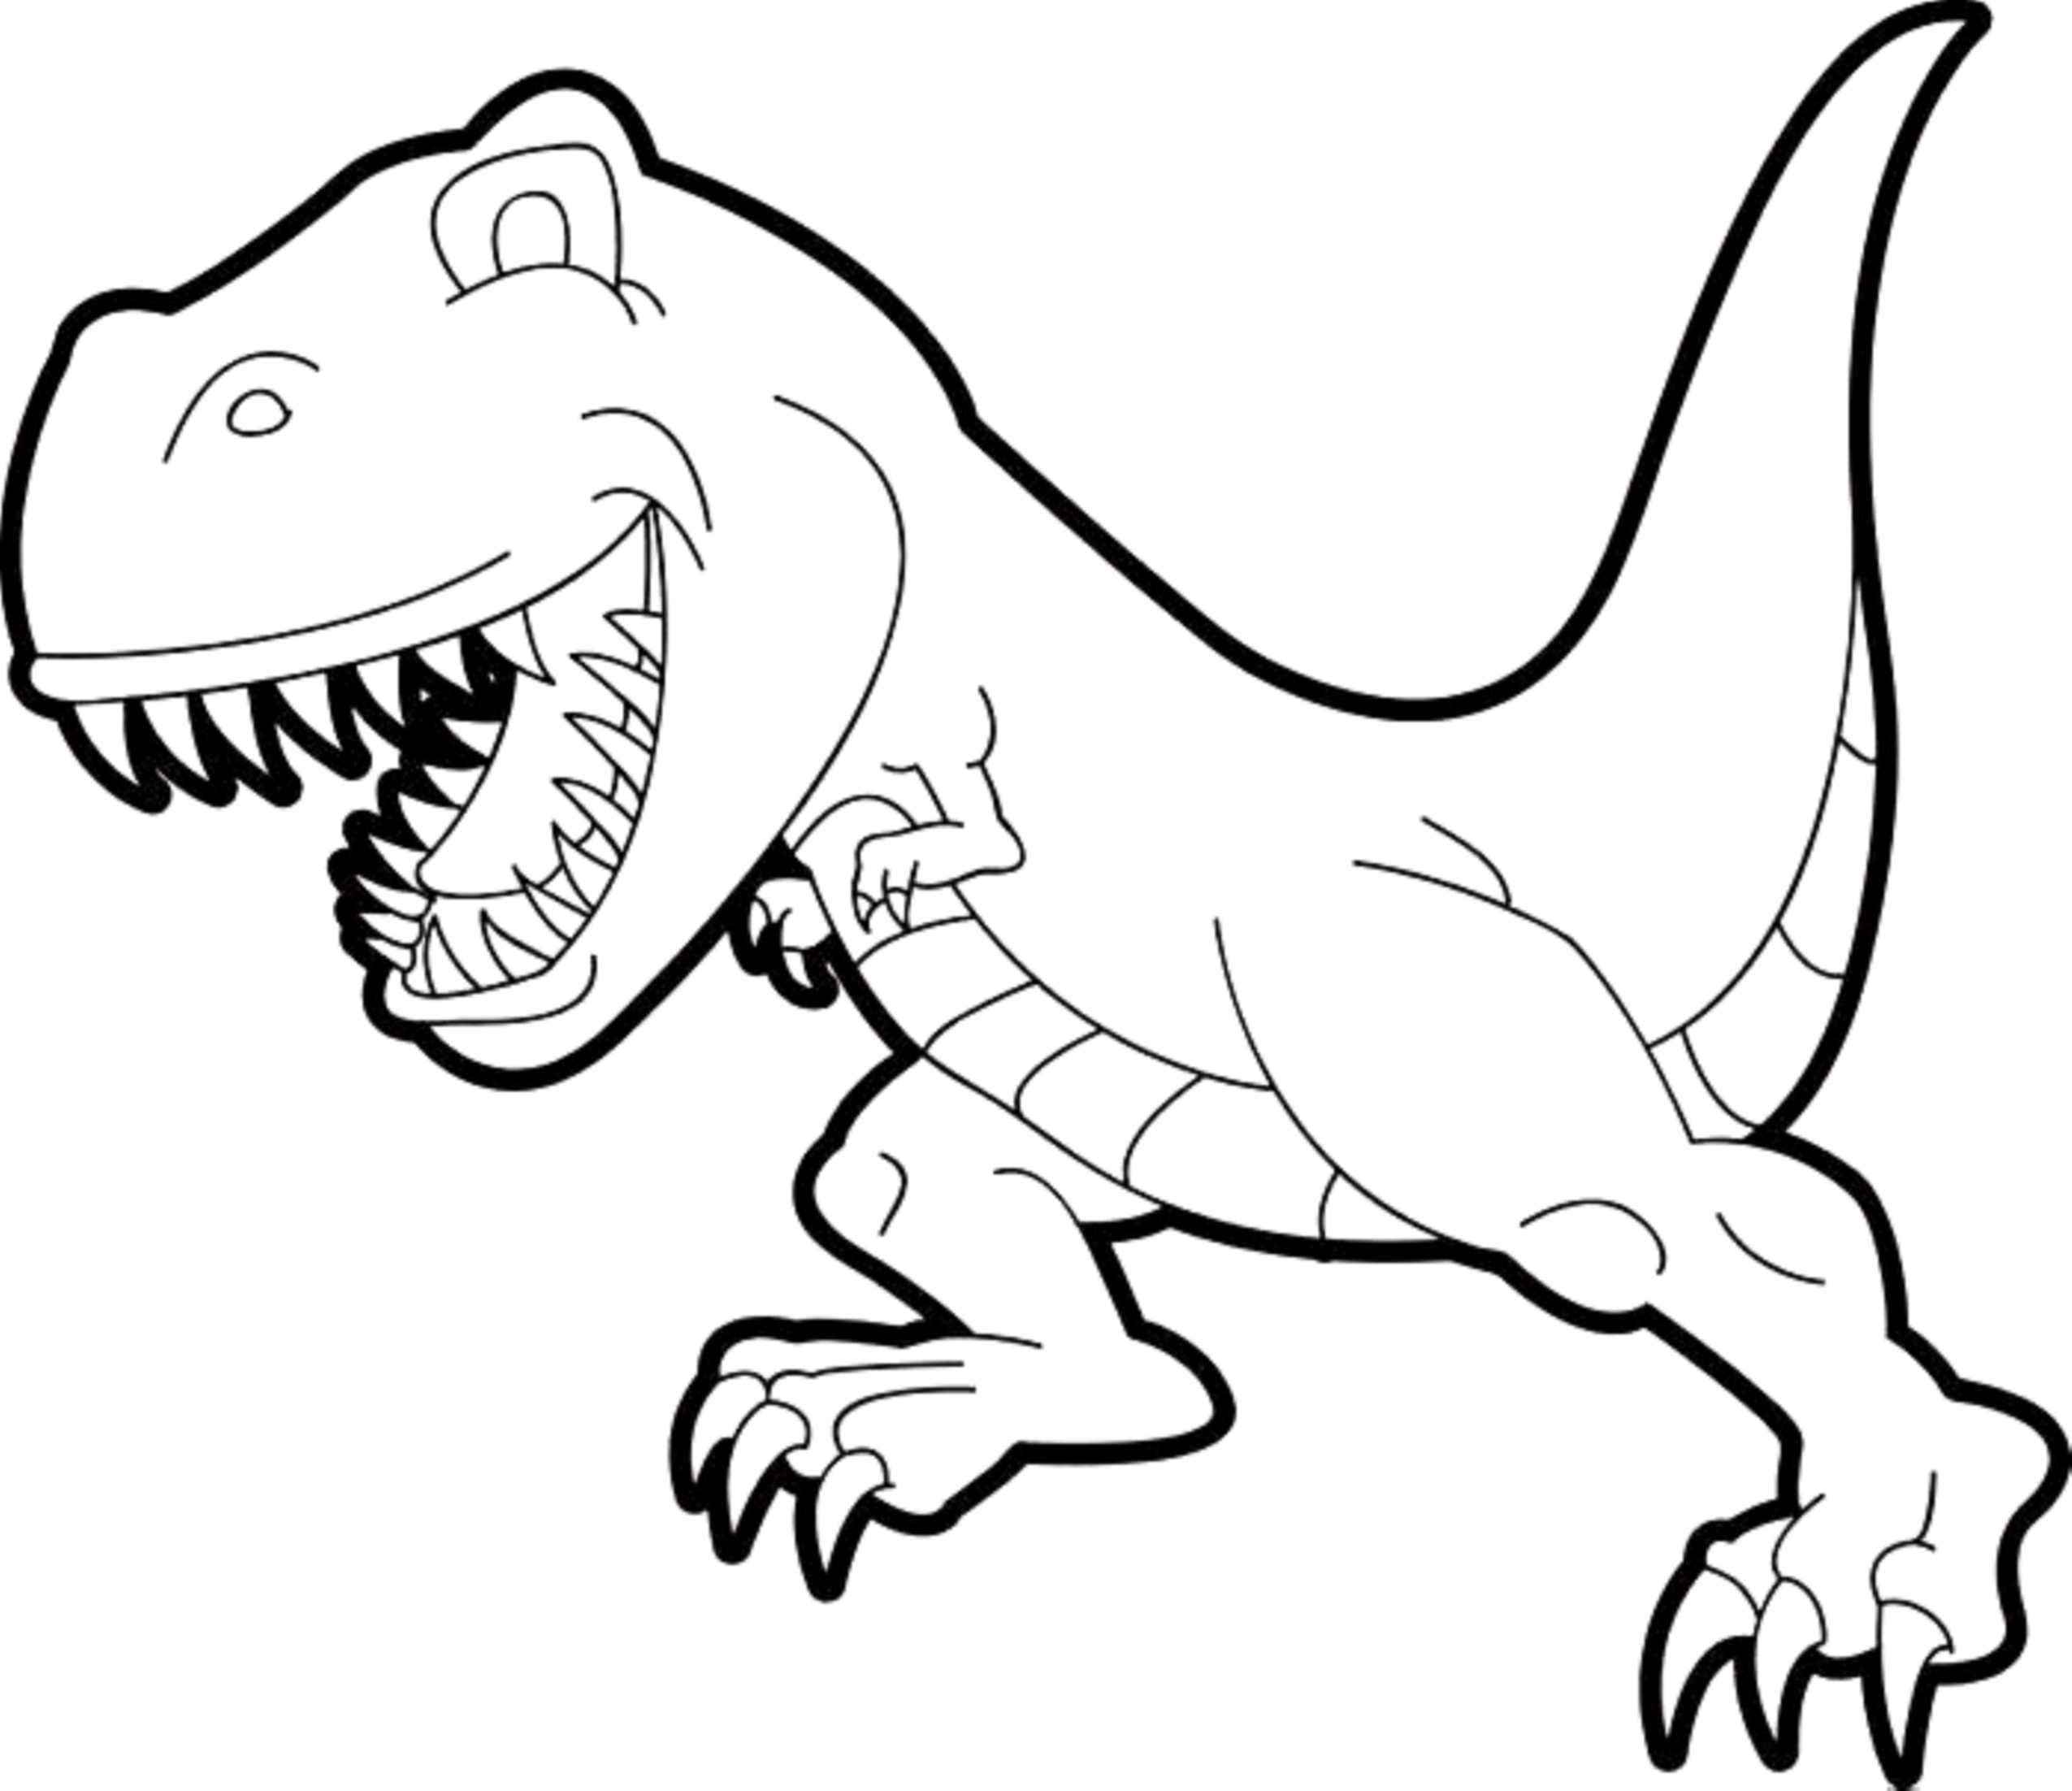 dinasour coloring pages dinosaur coloring pages skip to my lou pages dinasour coloring